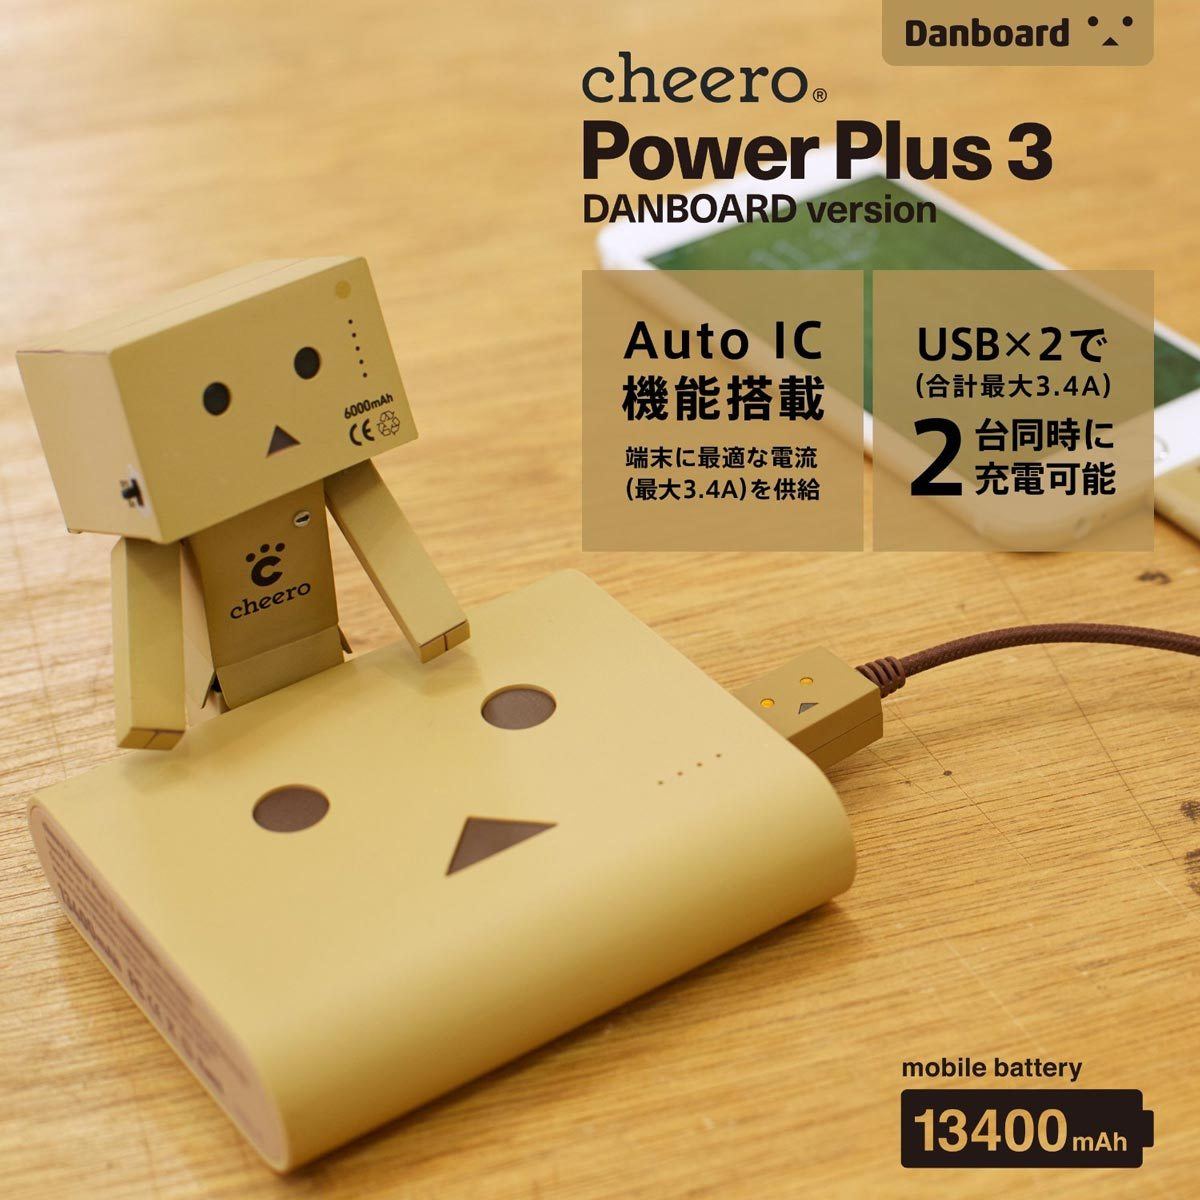 cheero_powerplus3_danboard_3